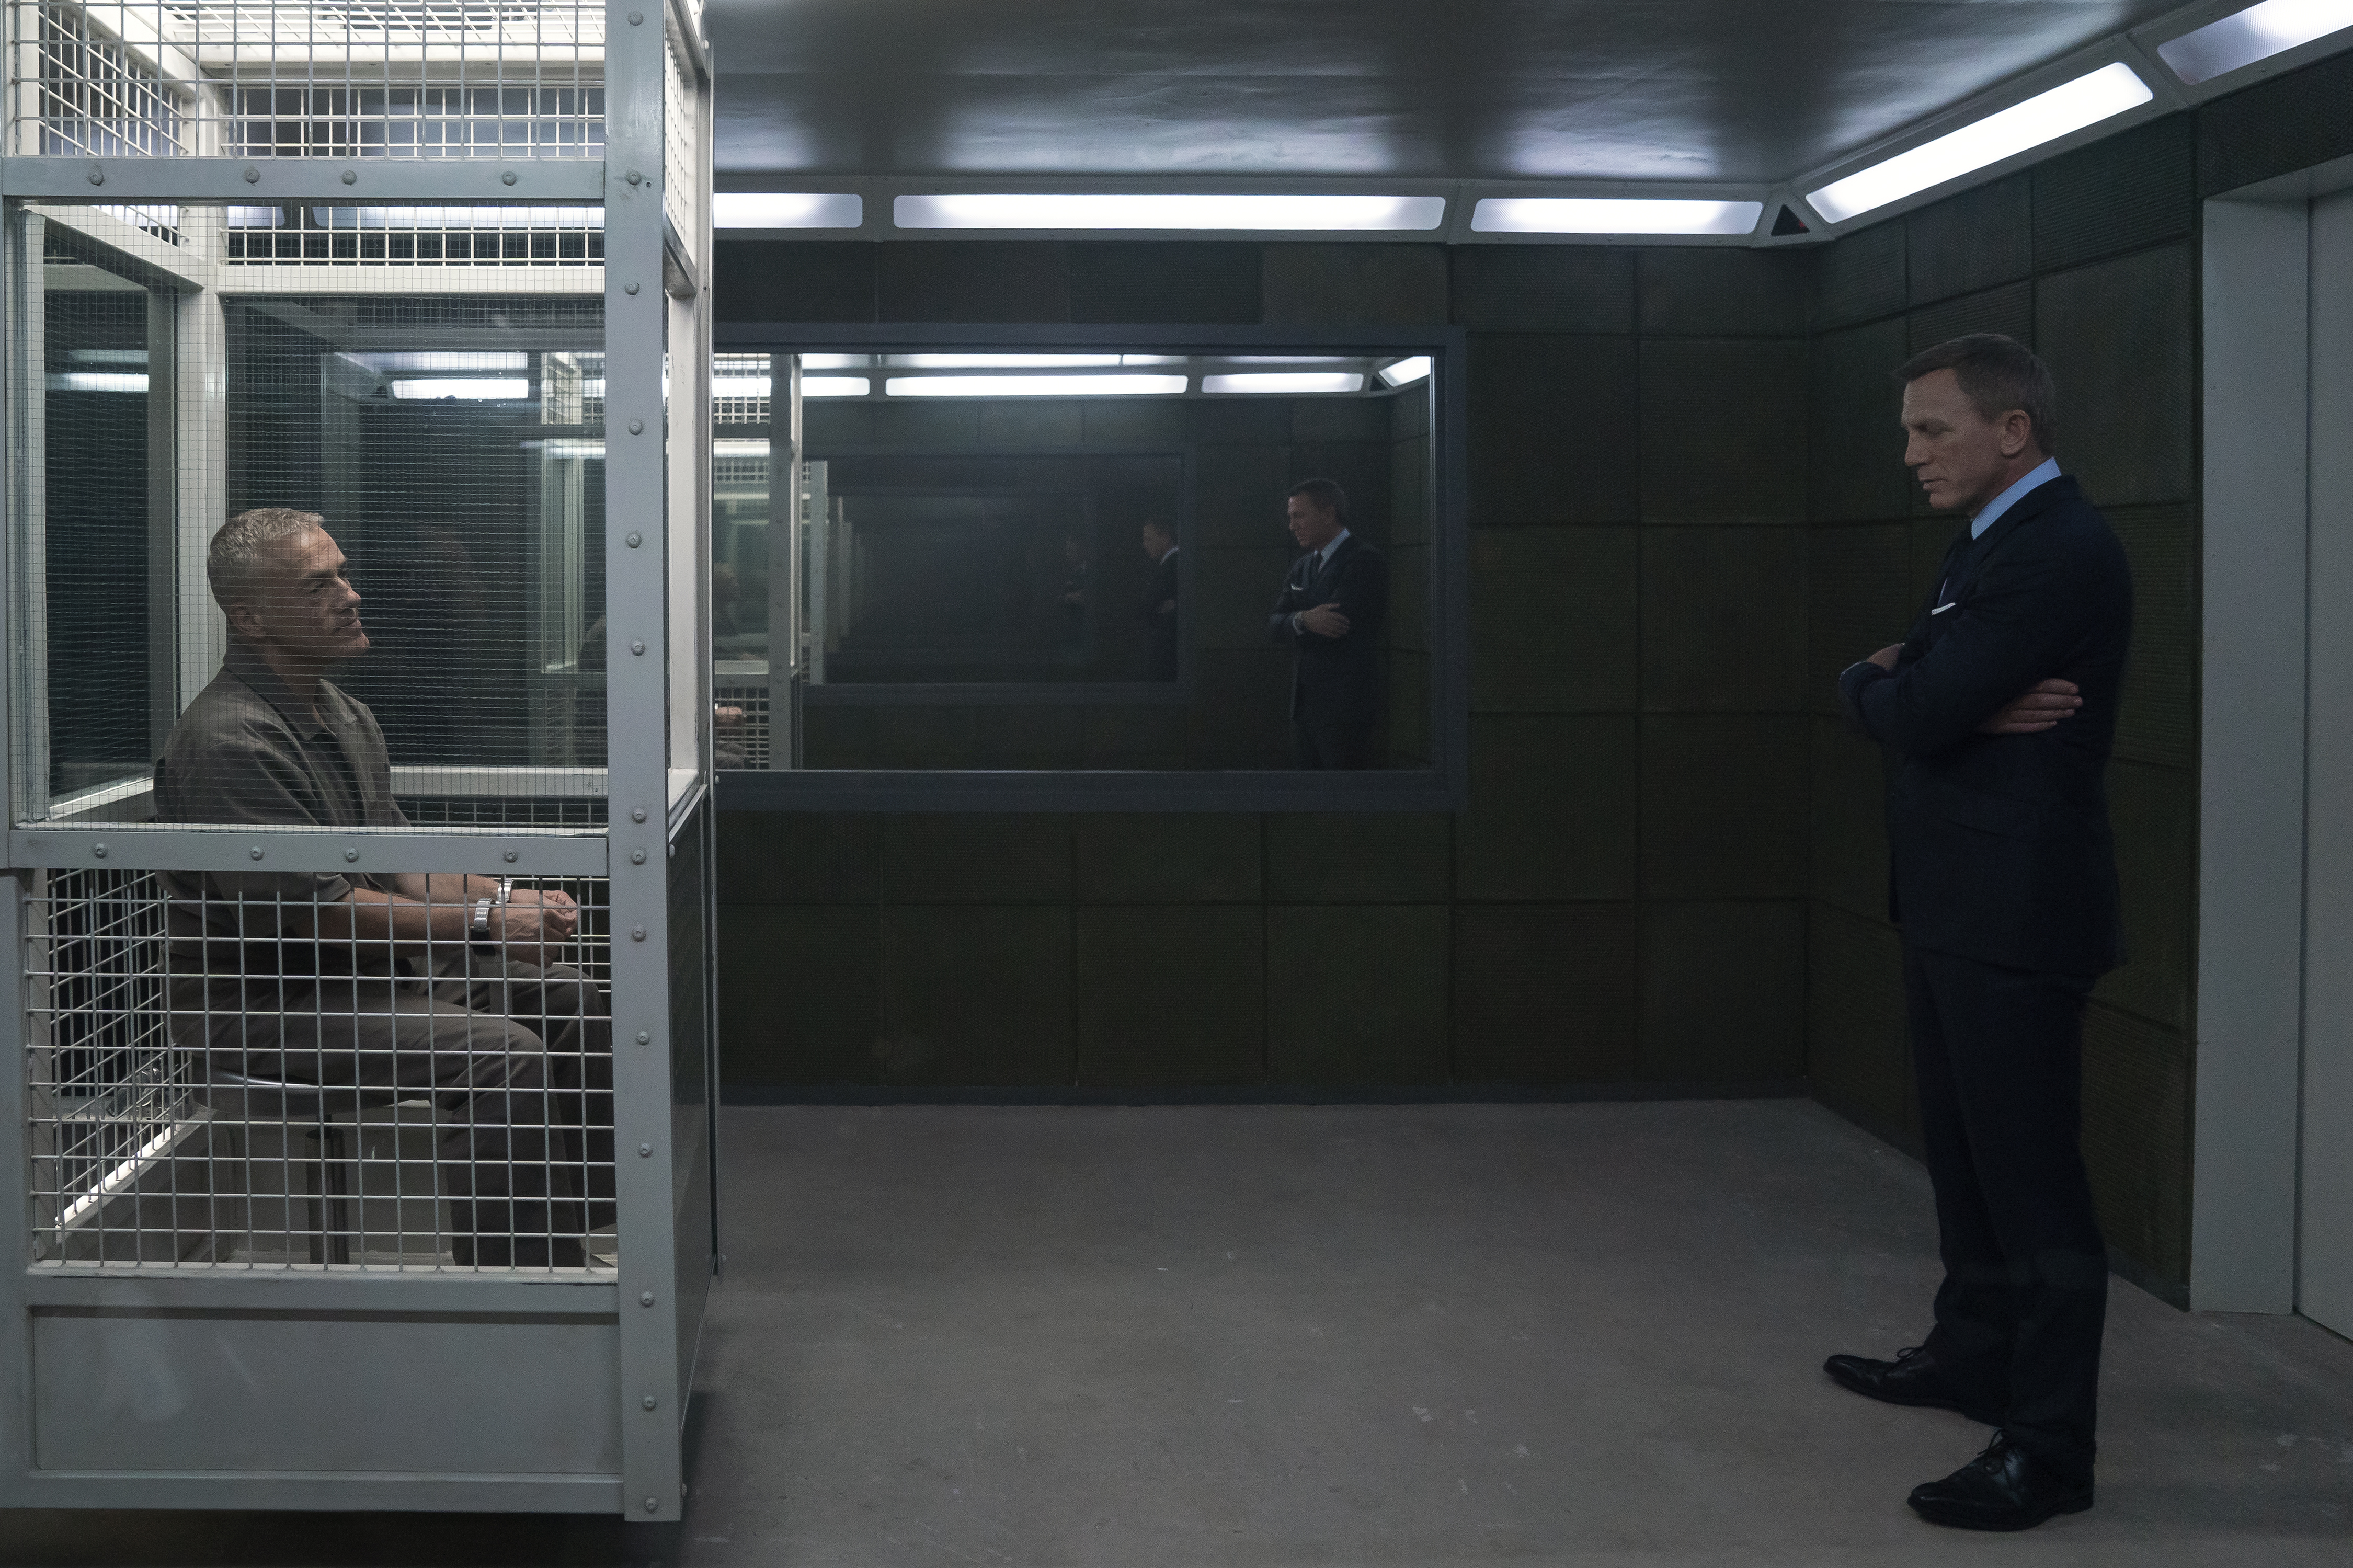 Daniel Craig, as James Bond, visits Blofeld (Christoph Waltz) in his prison cell in No Time to Die